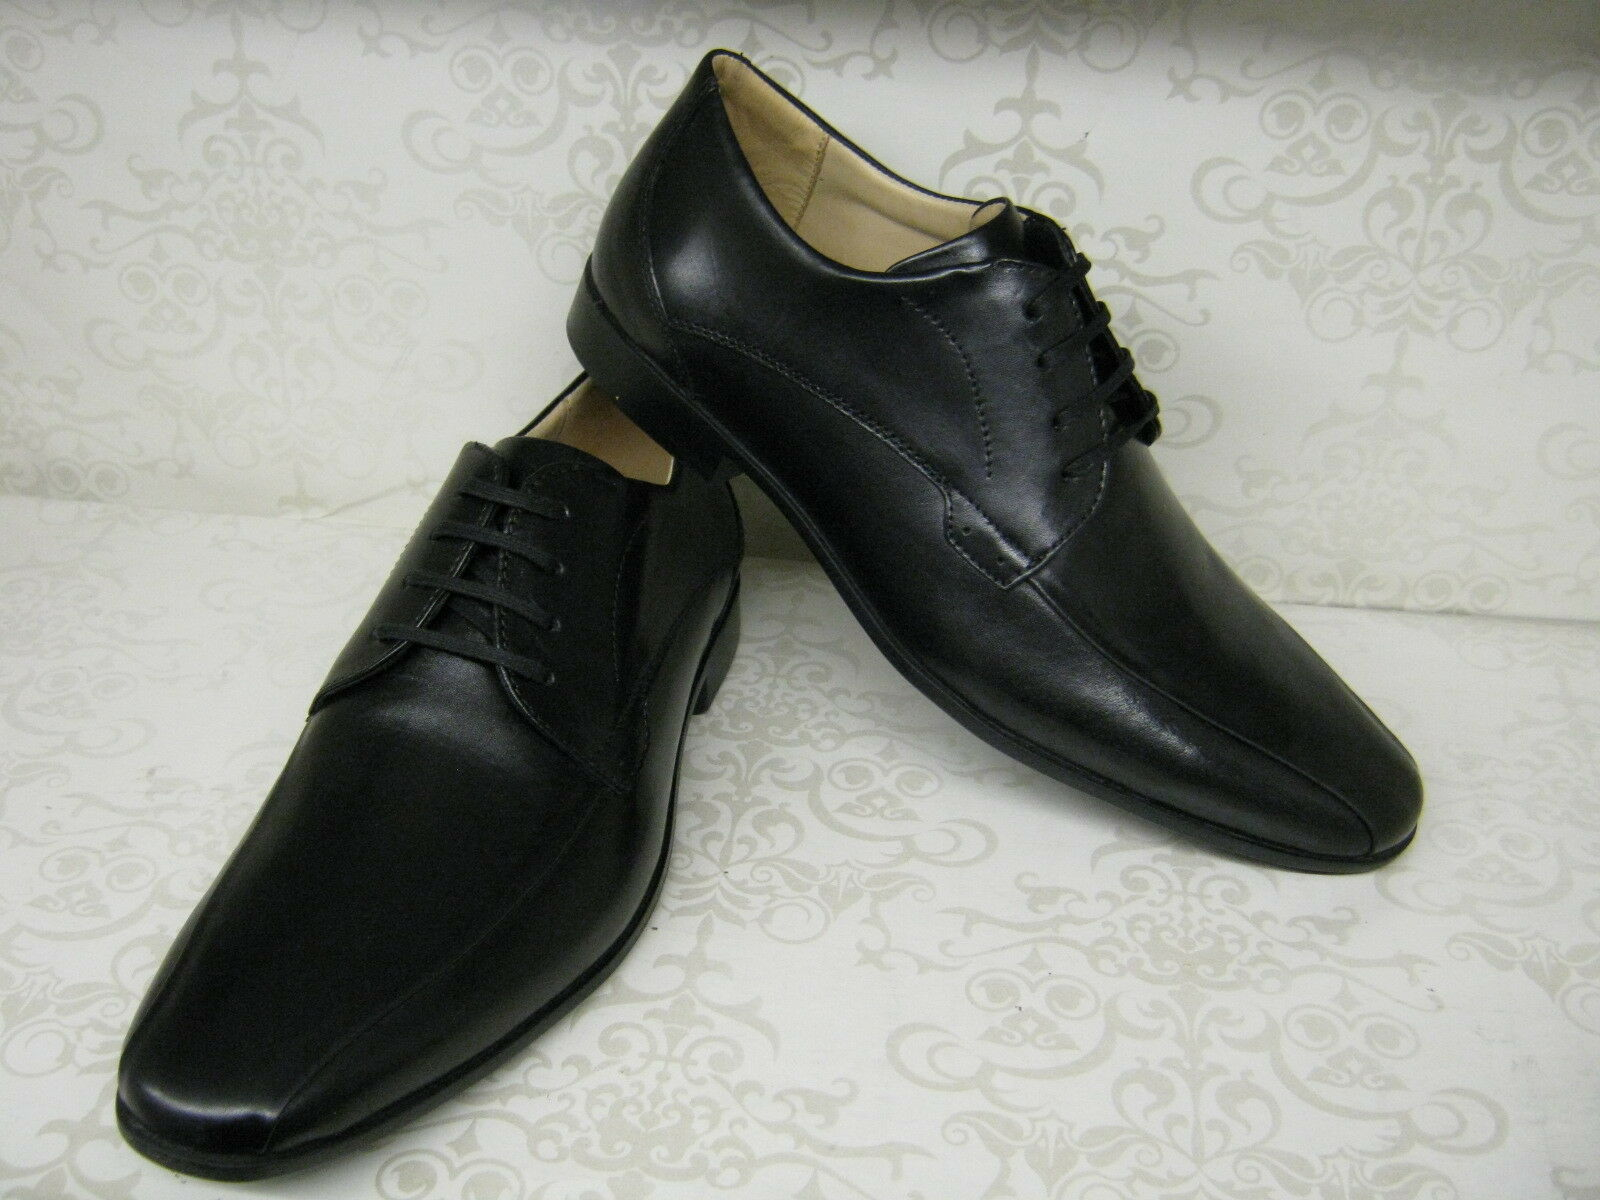 Anatomic & Co Tapaua Black Leather Smart Lace Up Shoes